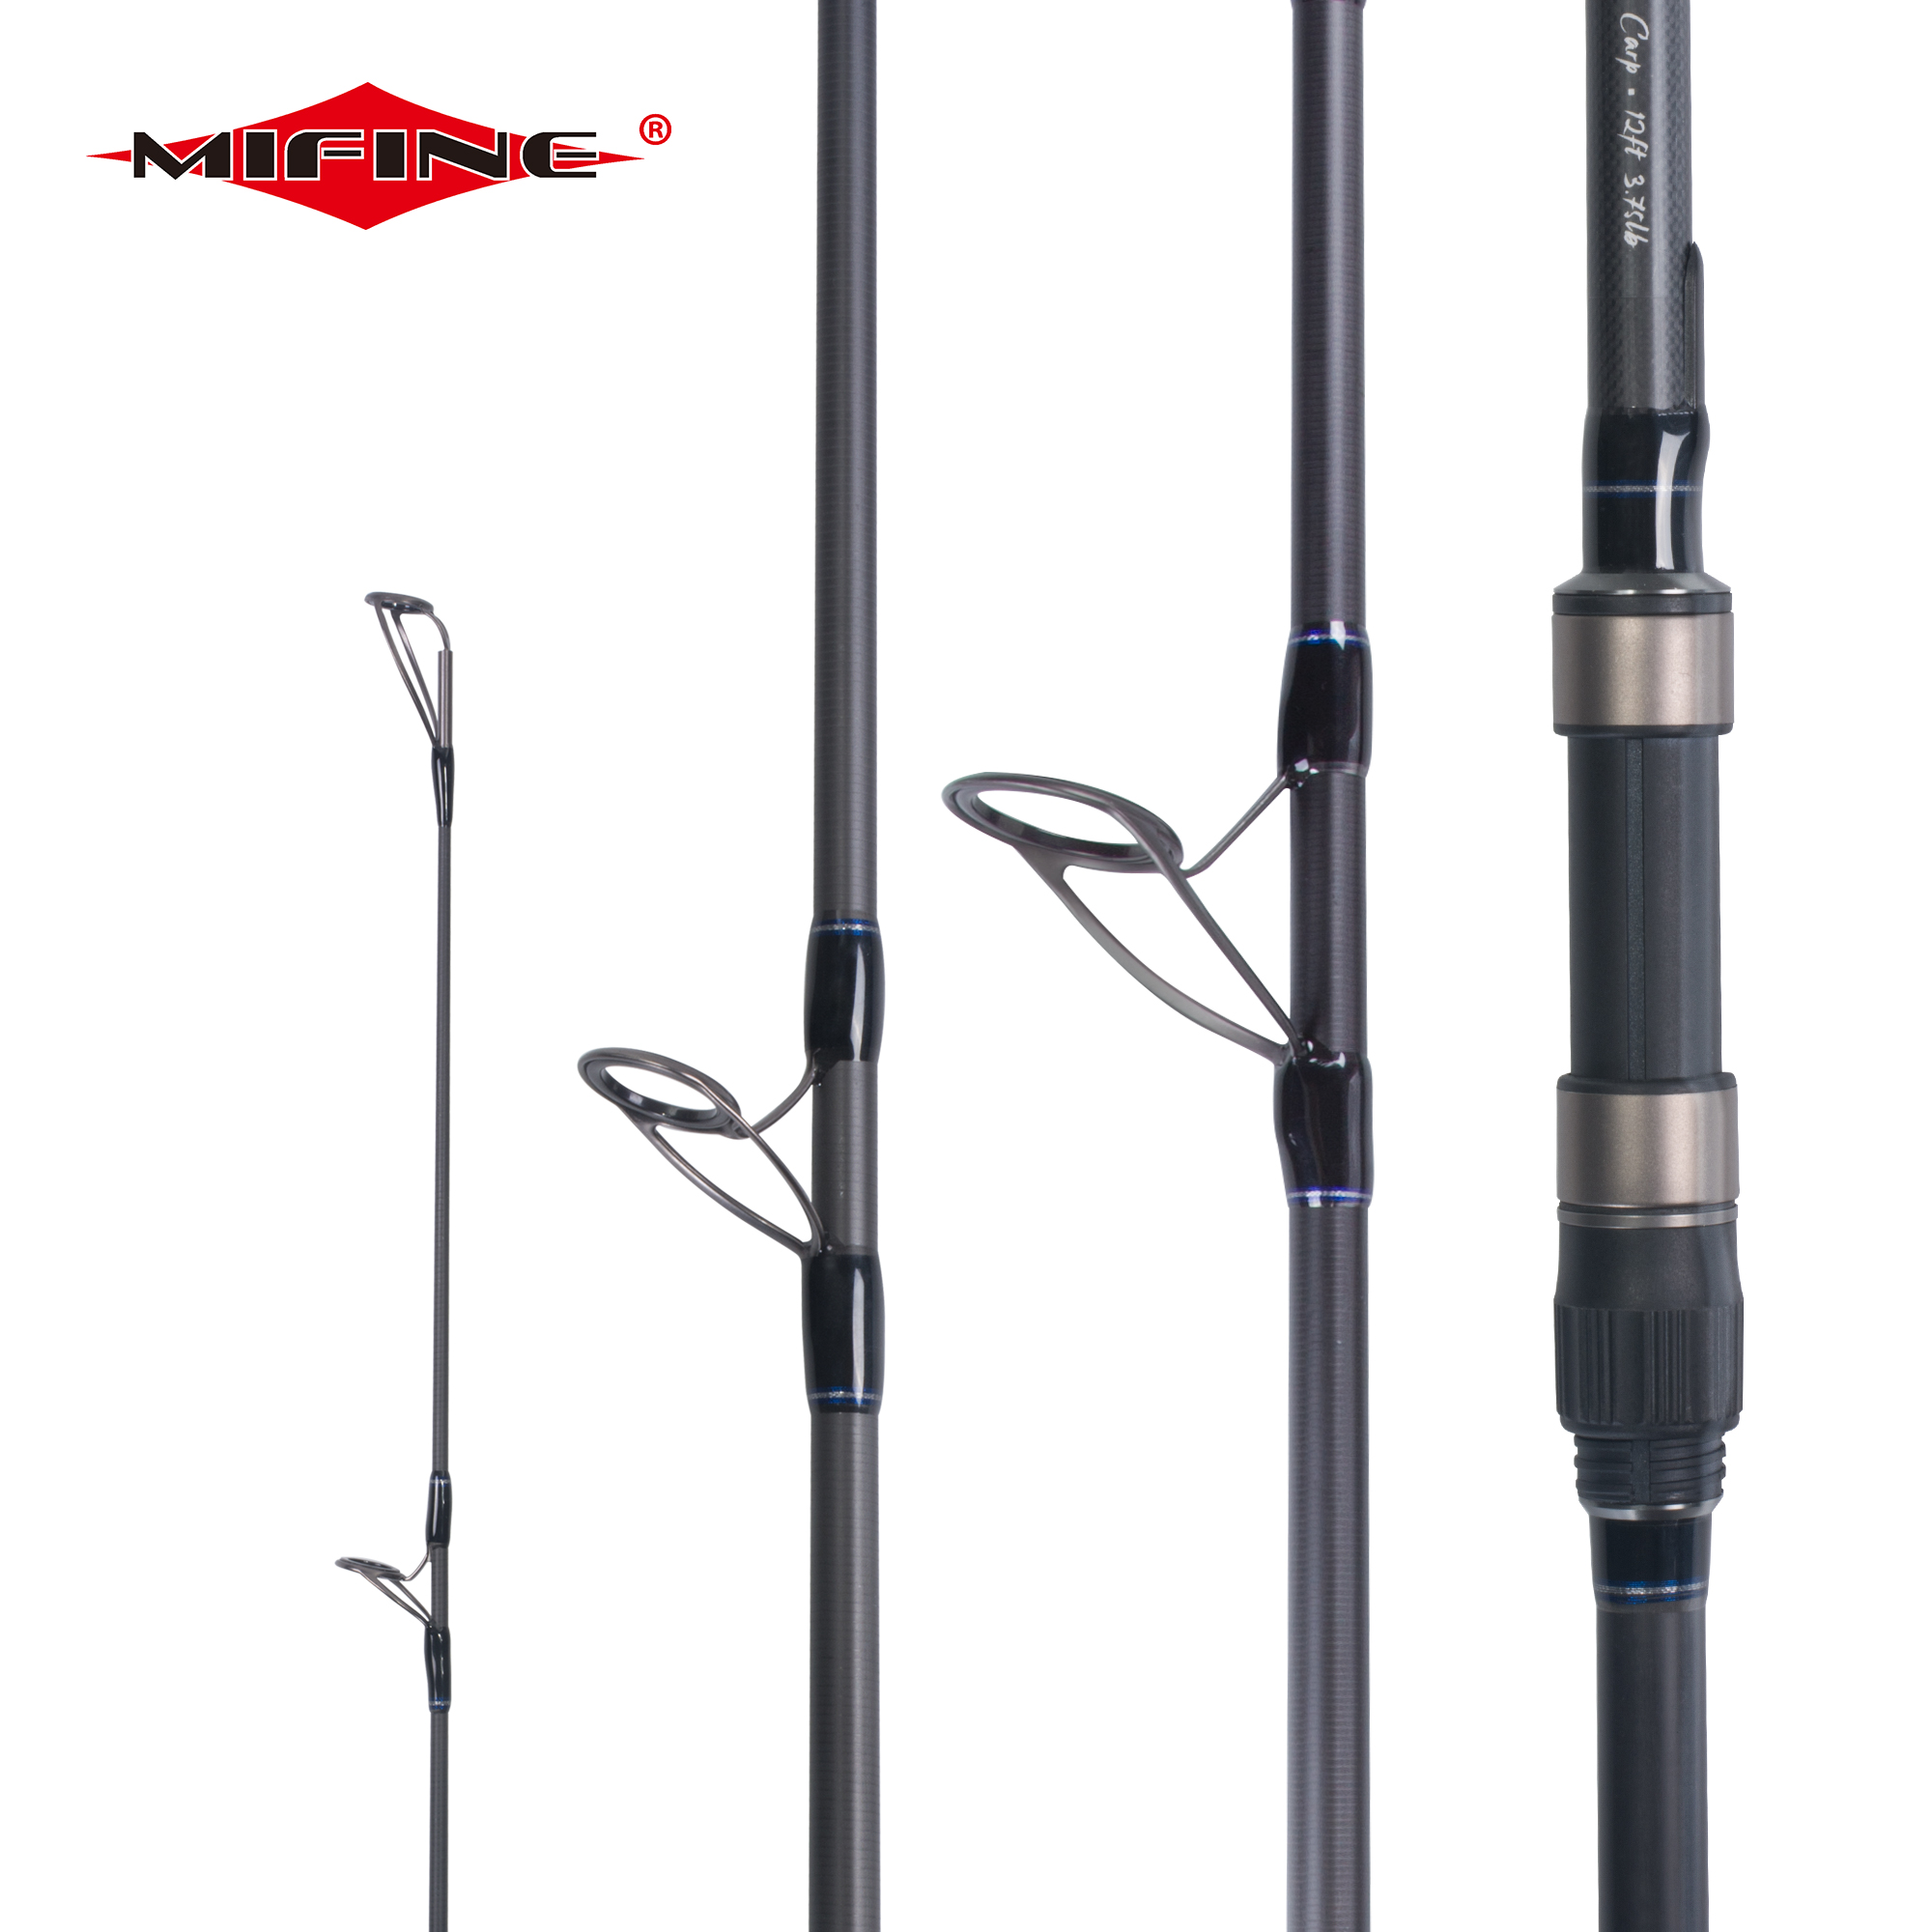 MIFINE BUDEFO CARP Fishing Rod 3.25/3.75/4.25LBS 3.6/3.9M High Carbon Spinning Rod Hard Pole Surf Rod Throwing Shot 80-160M